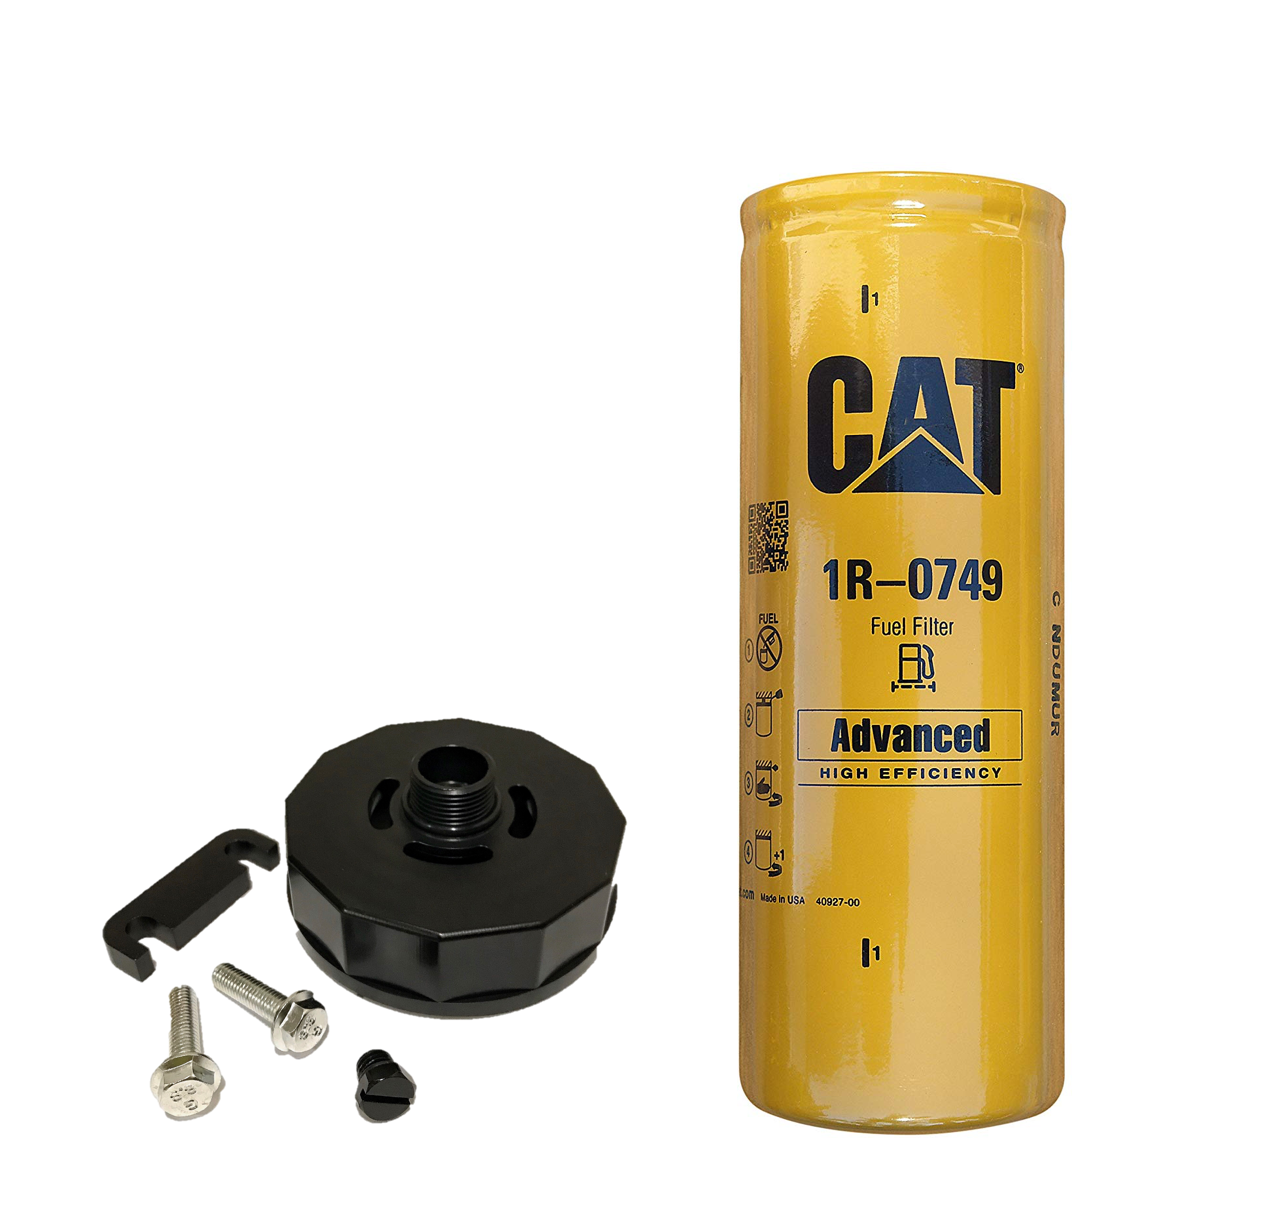 Duramax CAT Fuel Filter adapter